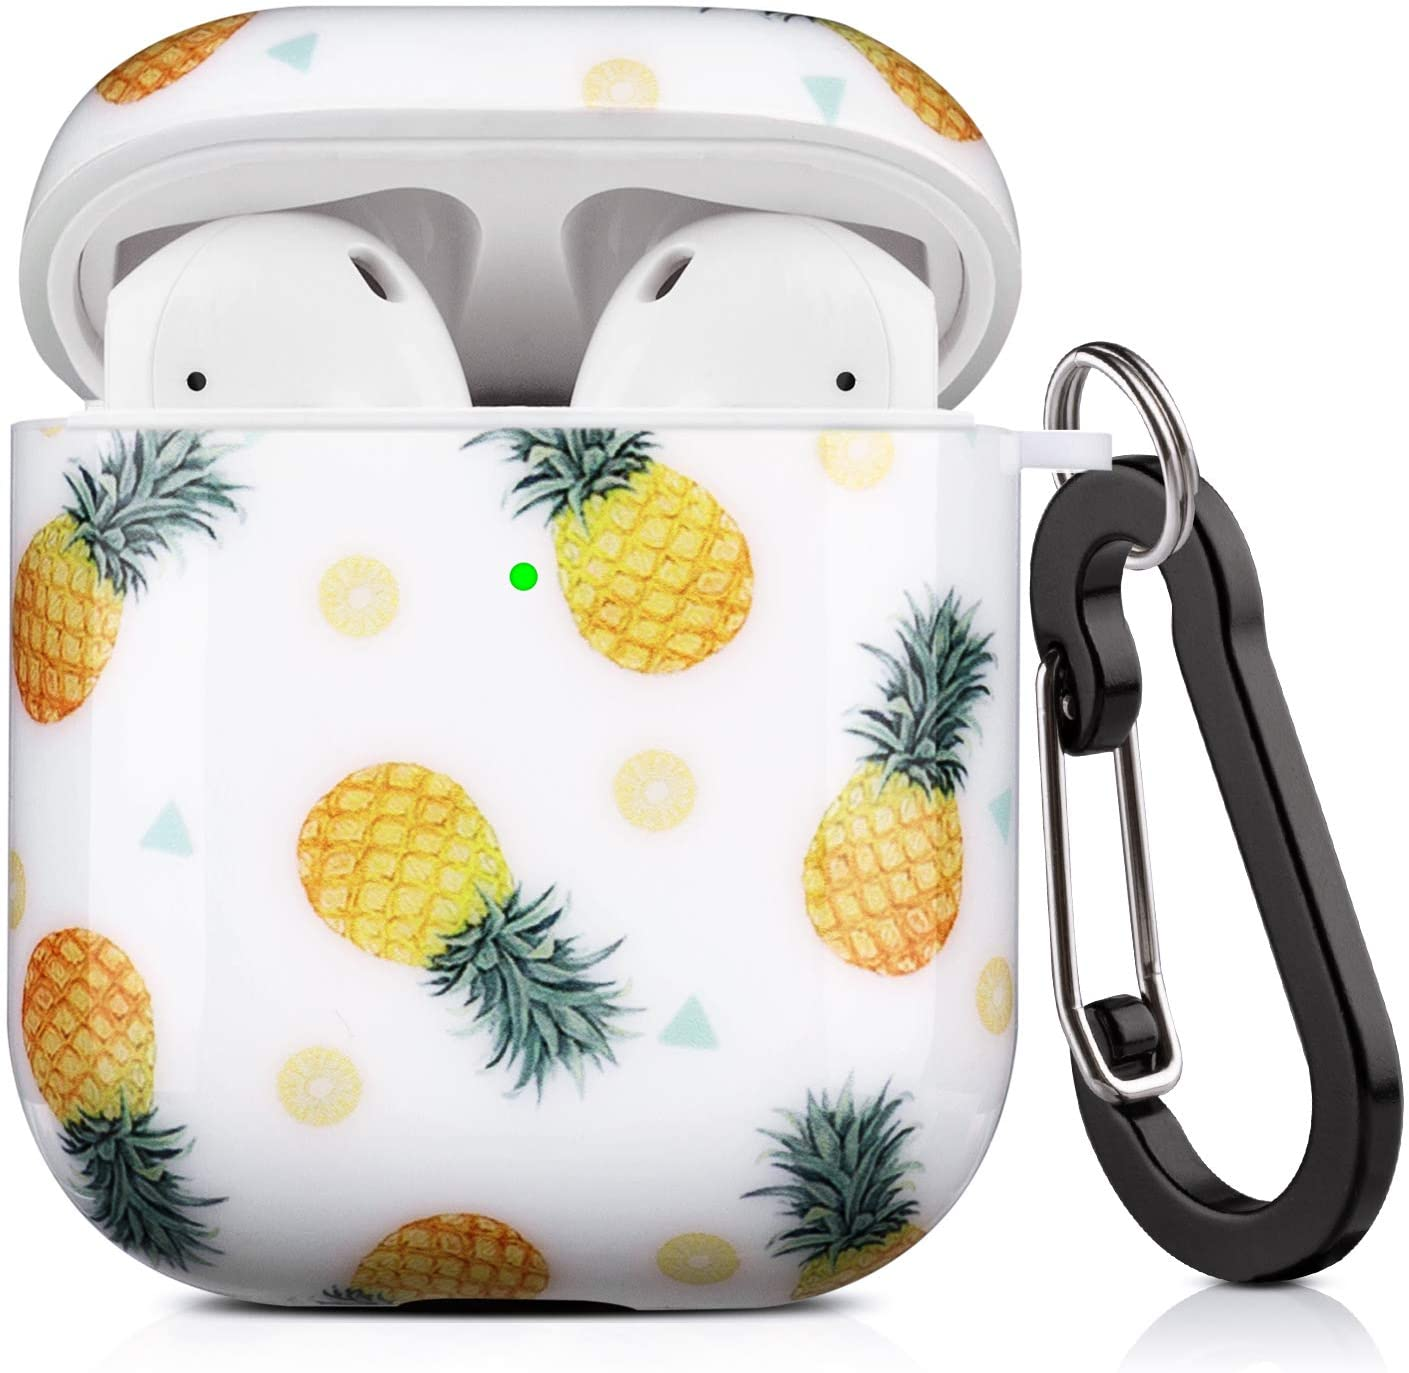 Lokigo AirPods Case Protective Cover Compatible with Apple AirPods 2 and 1 Hard Case Kits with Keychain/Strap/Earhooks/Watch Band Holder for Girls Women Men(Tiled Pineapple)